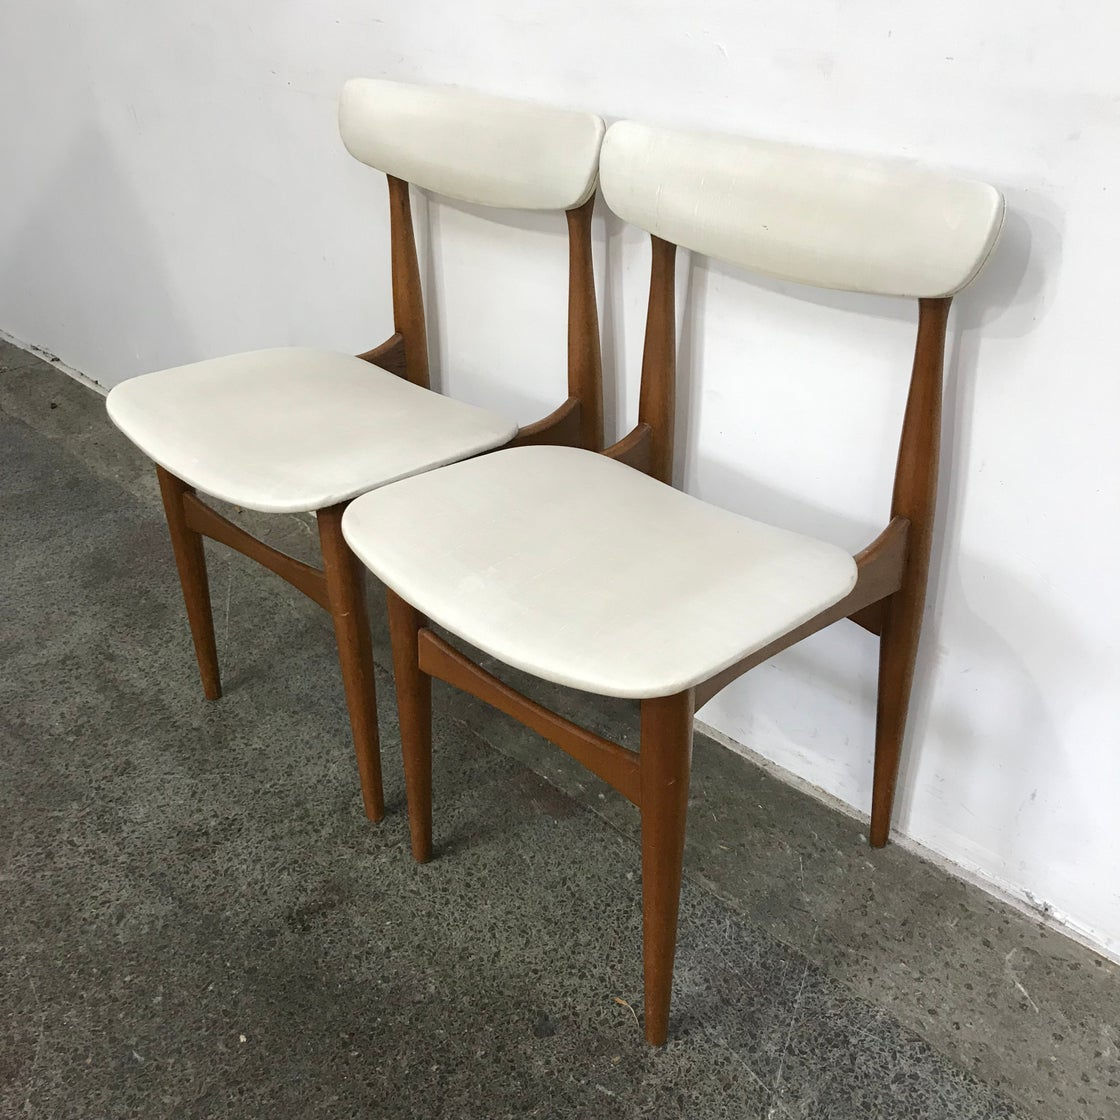 Image of PAIR OF ELITE DINING CHAIRS